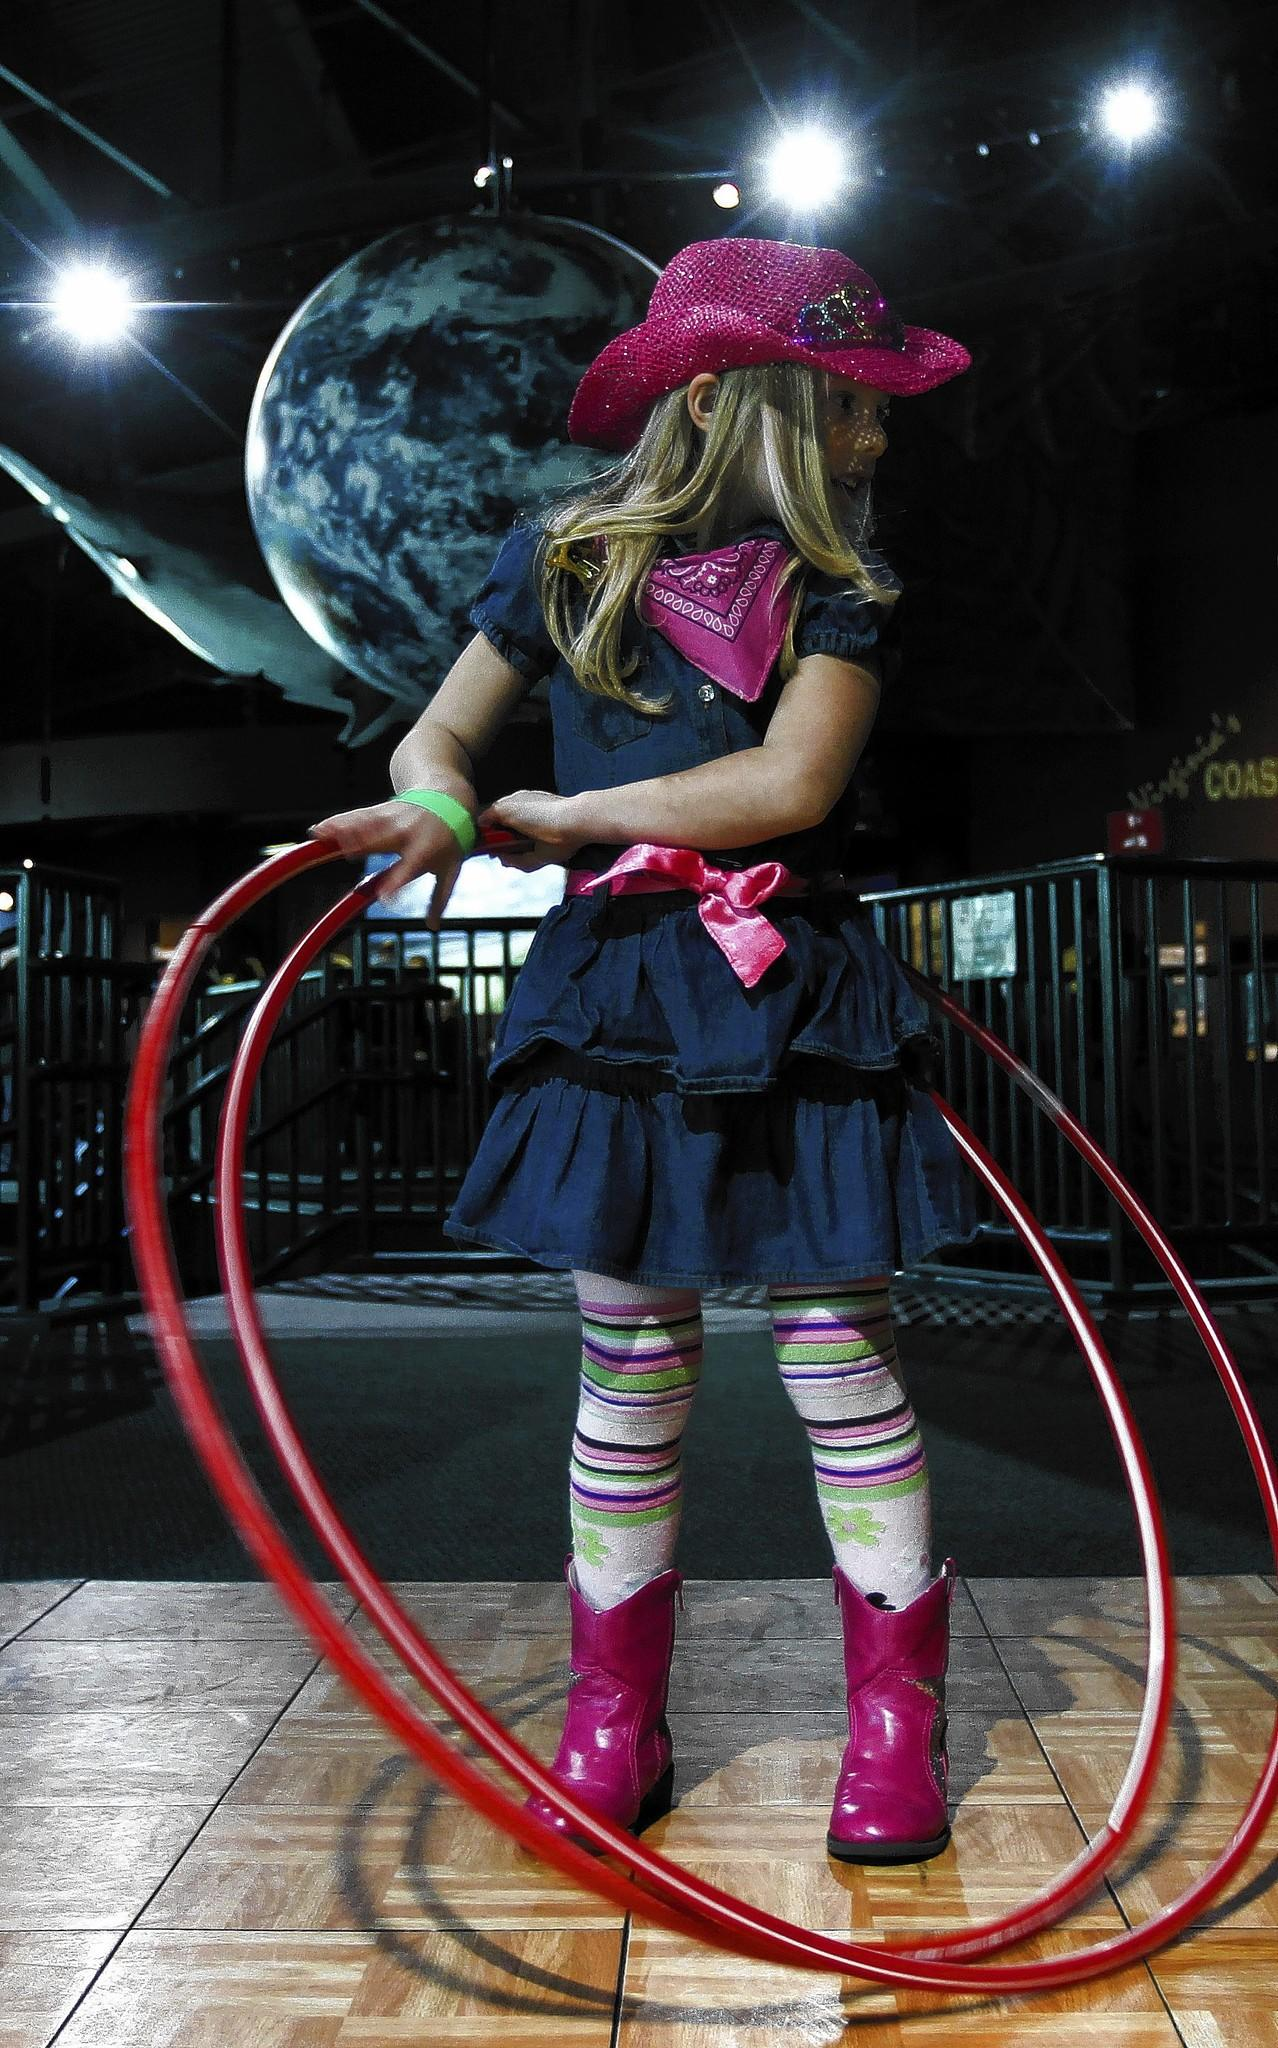 Alex Schaberl, 5, participates in a hula-hooping competition at the High Noon Year's Eve celebration at the Virginia Living Museum on Tuesday.